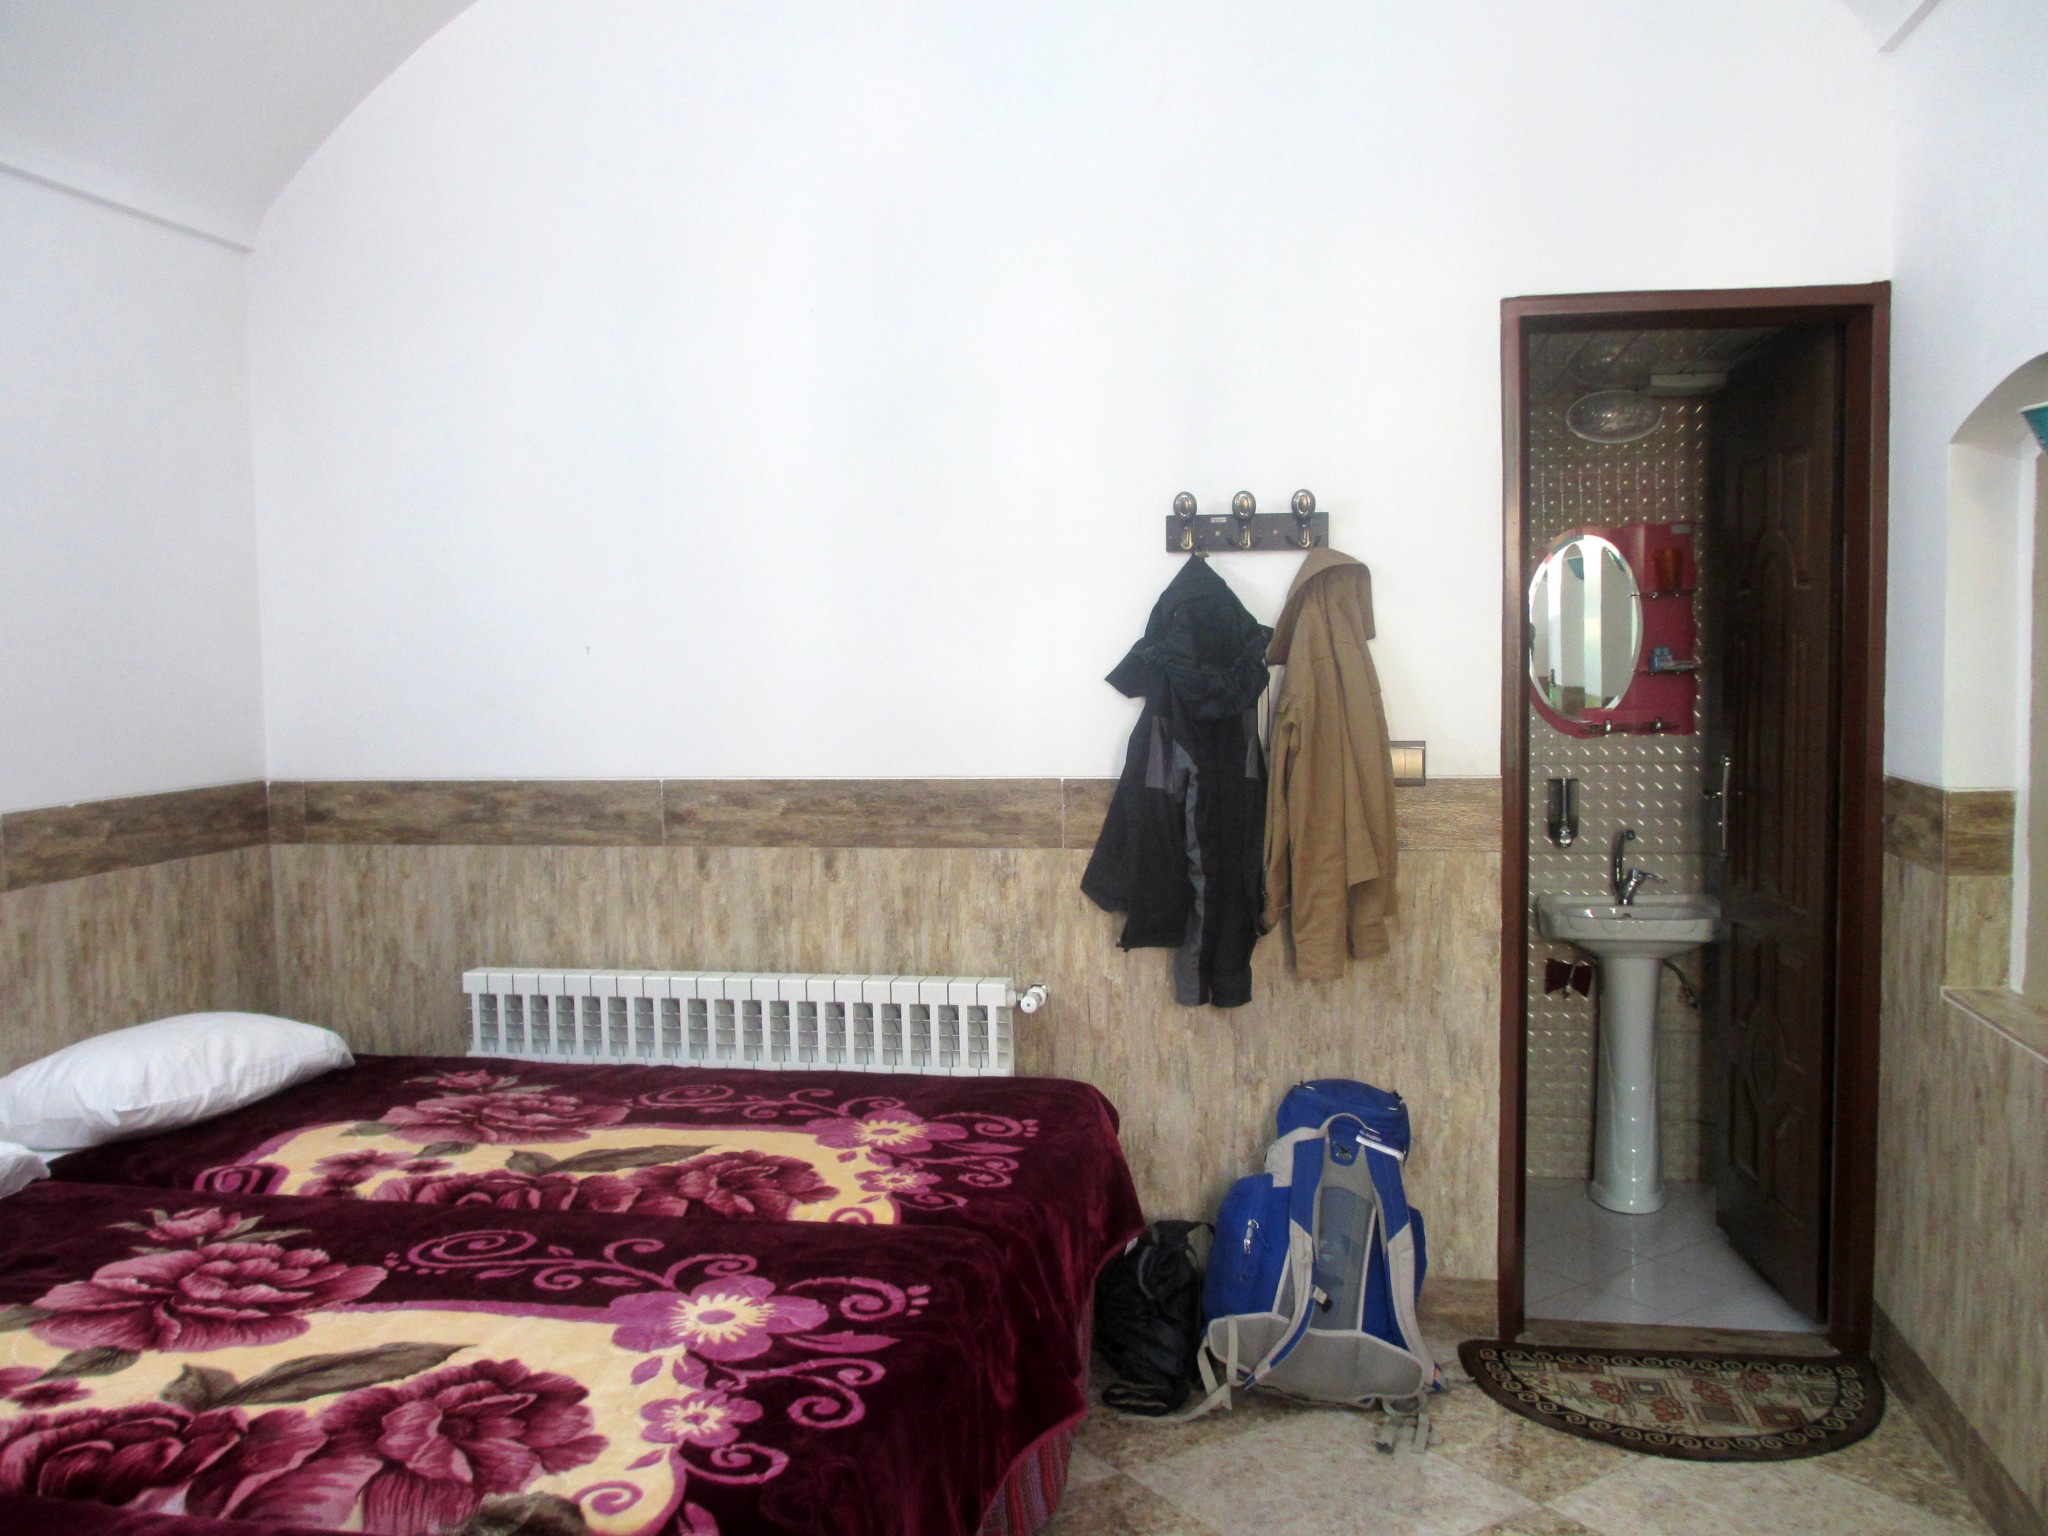 hostel-room-iran